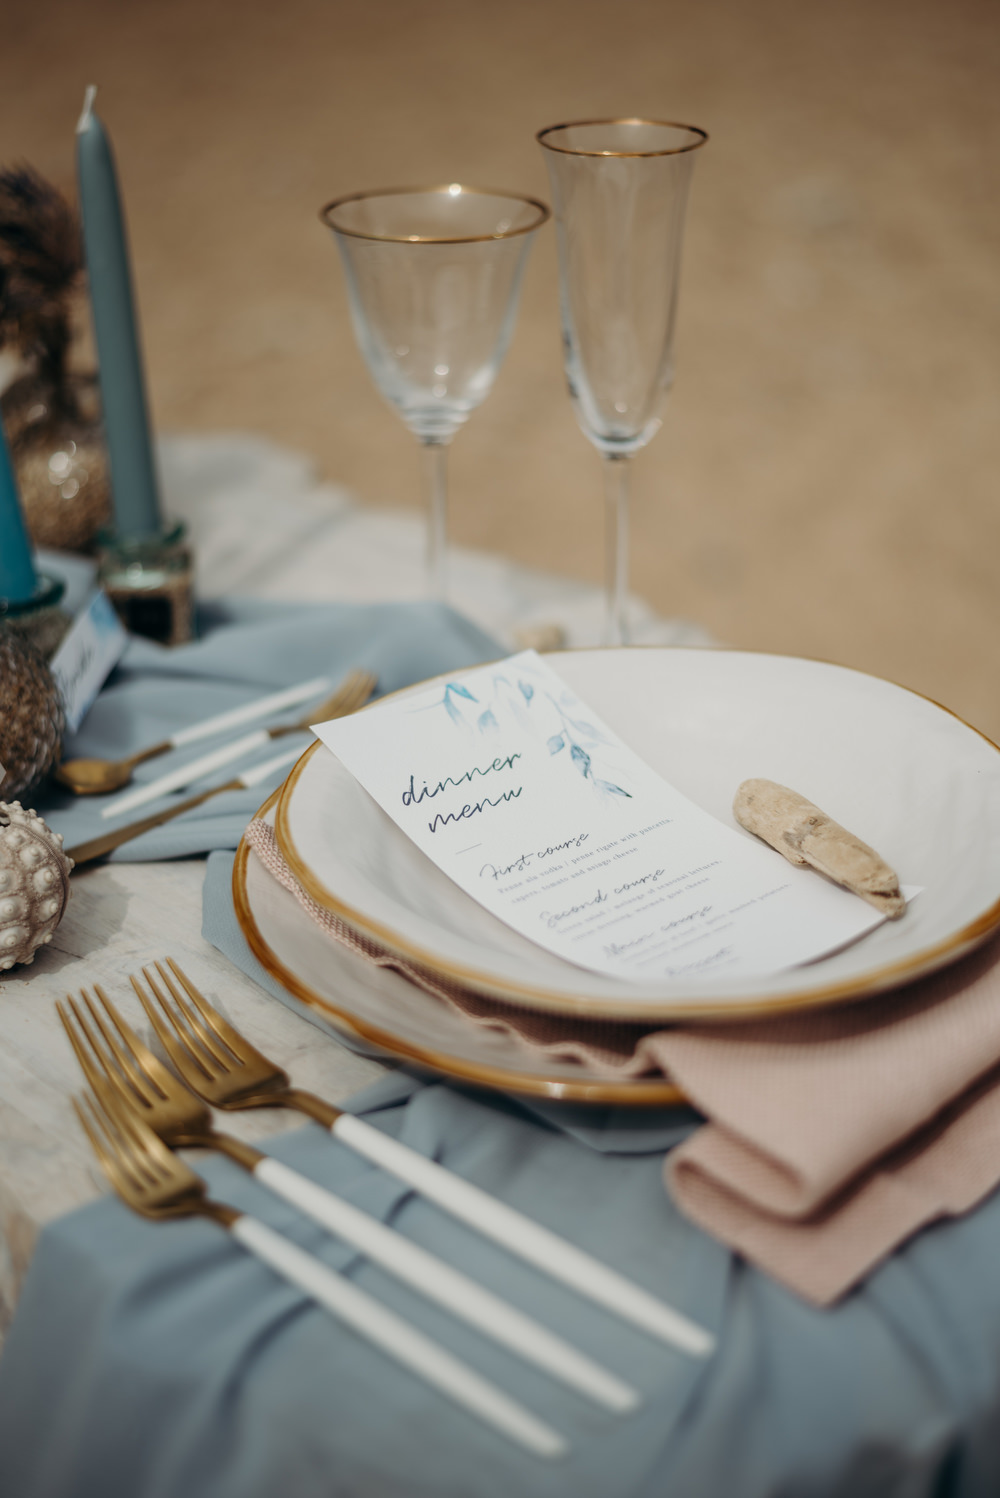 Outdoor Wild Nature Destination Spain Europe Coastal Styled Shoot Beach Table Elegant Styling   Blue Ibiza Elopement Ideas and Surprise Proposal Serena Genovese Photography